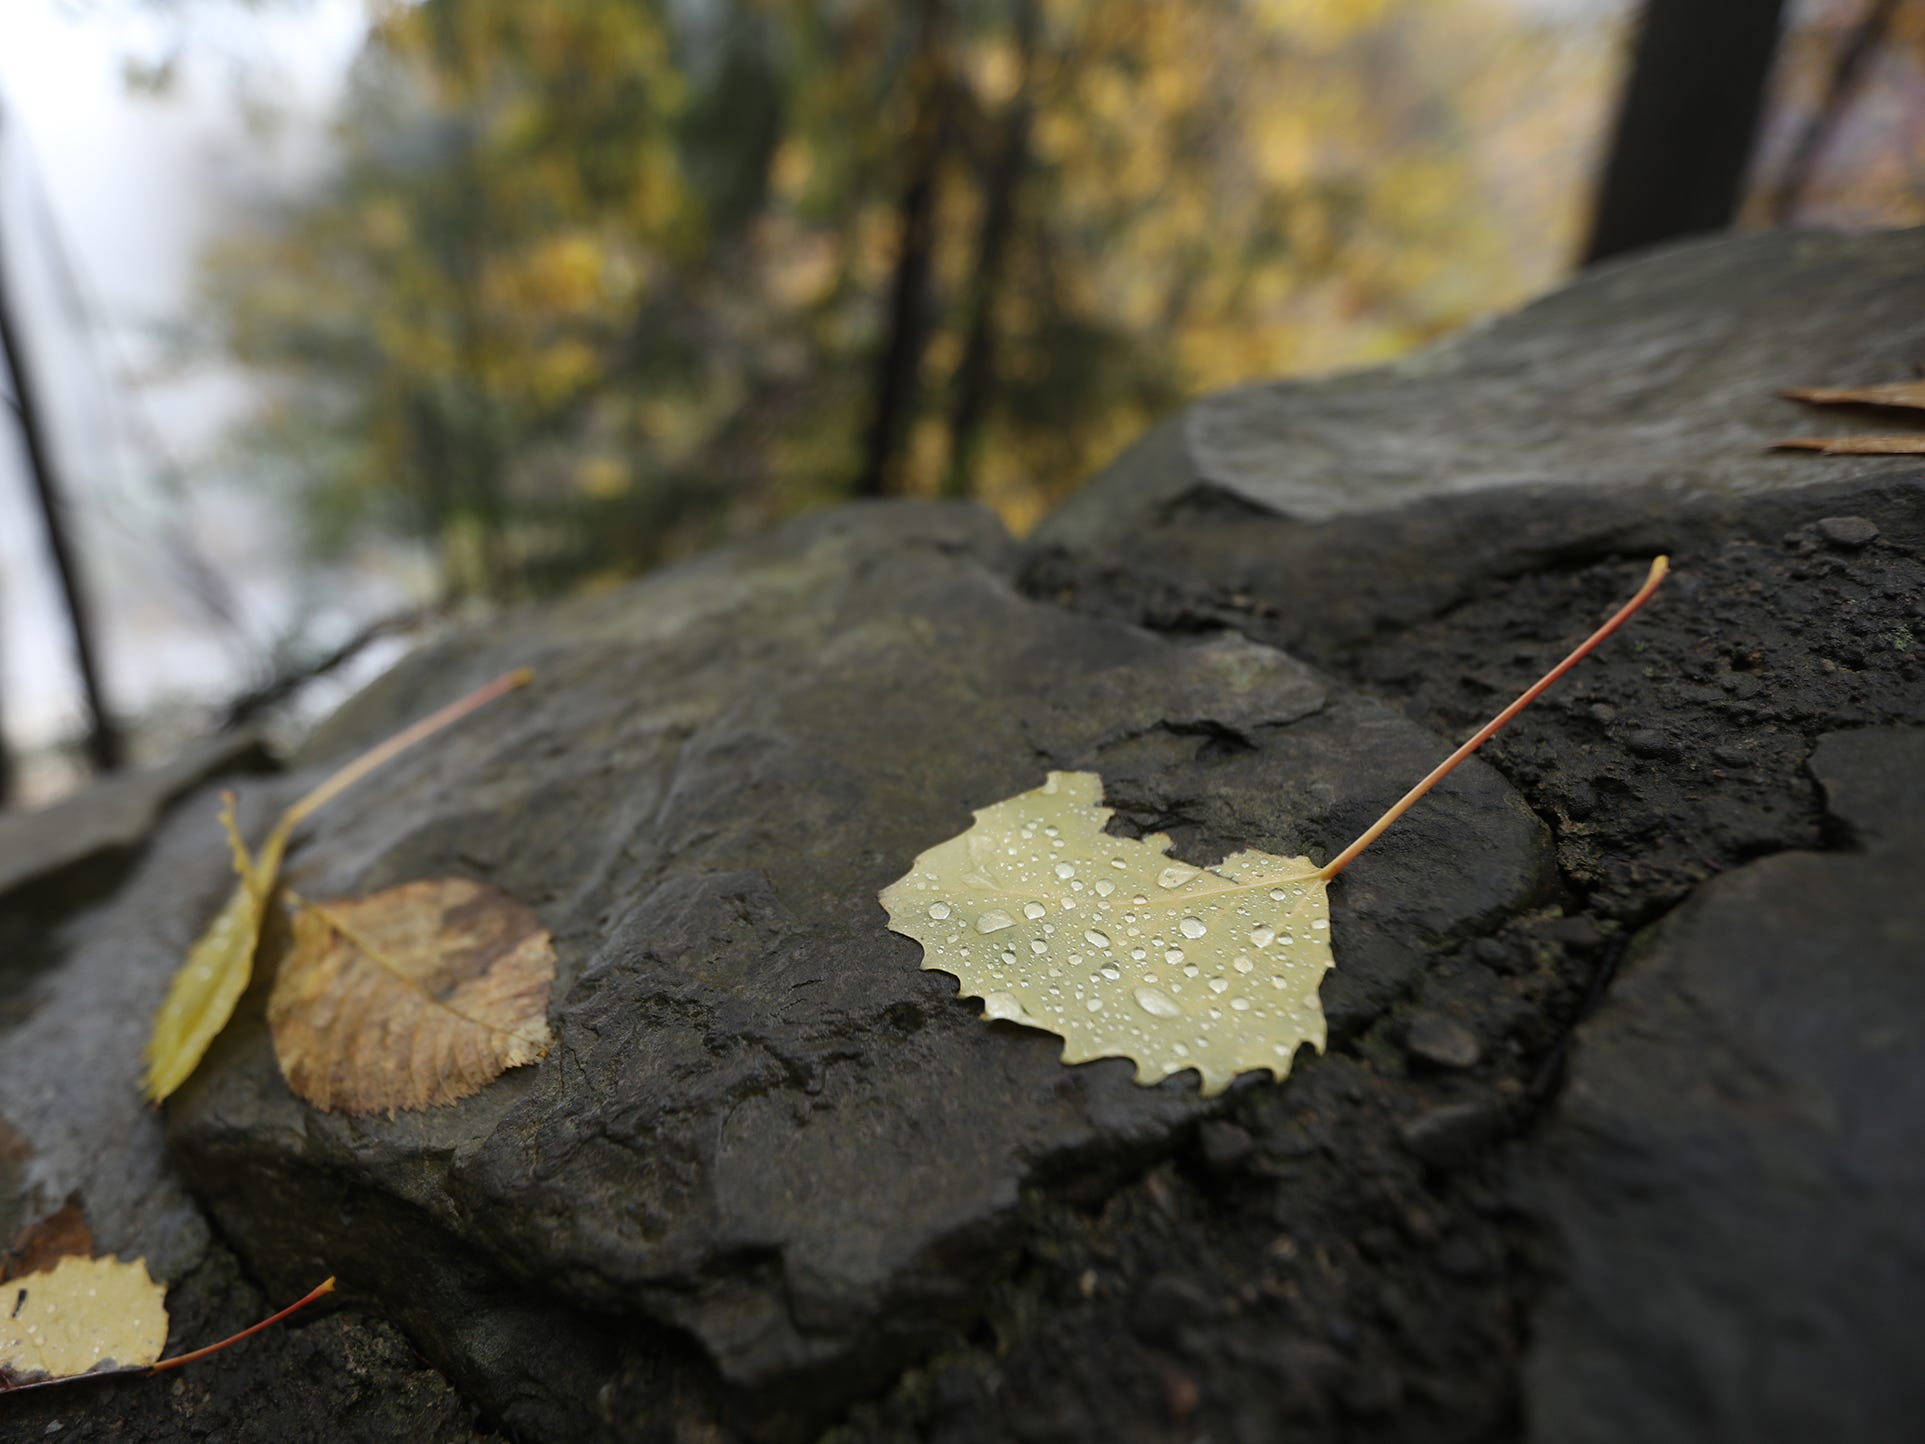 Water beads on a leaf at Letchworth State Park.